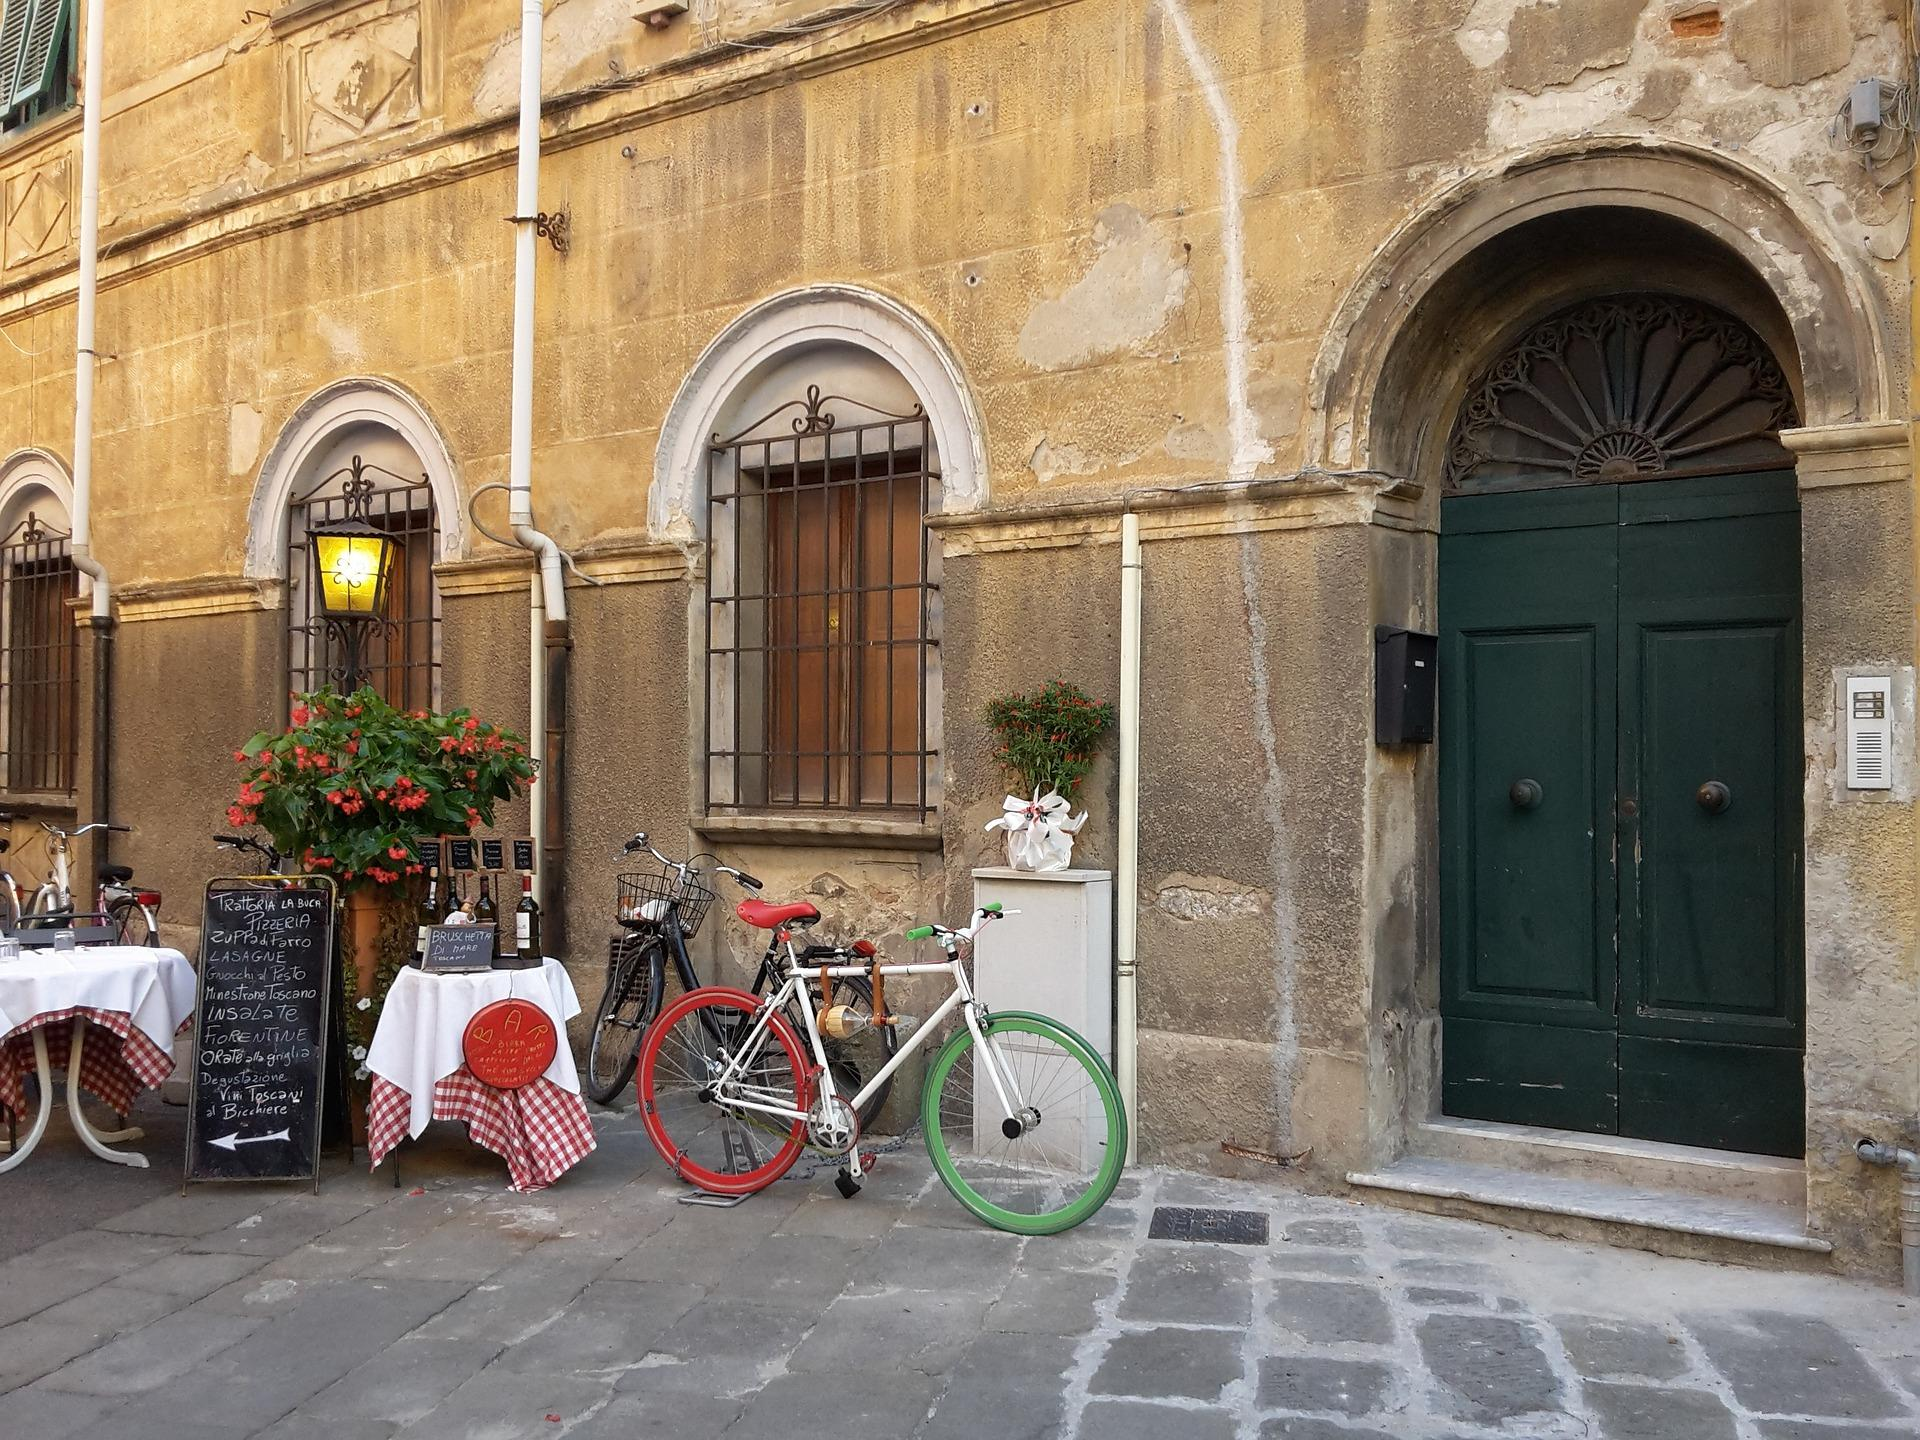 Lingua italiana in Bici - Italian language an